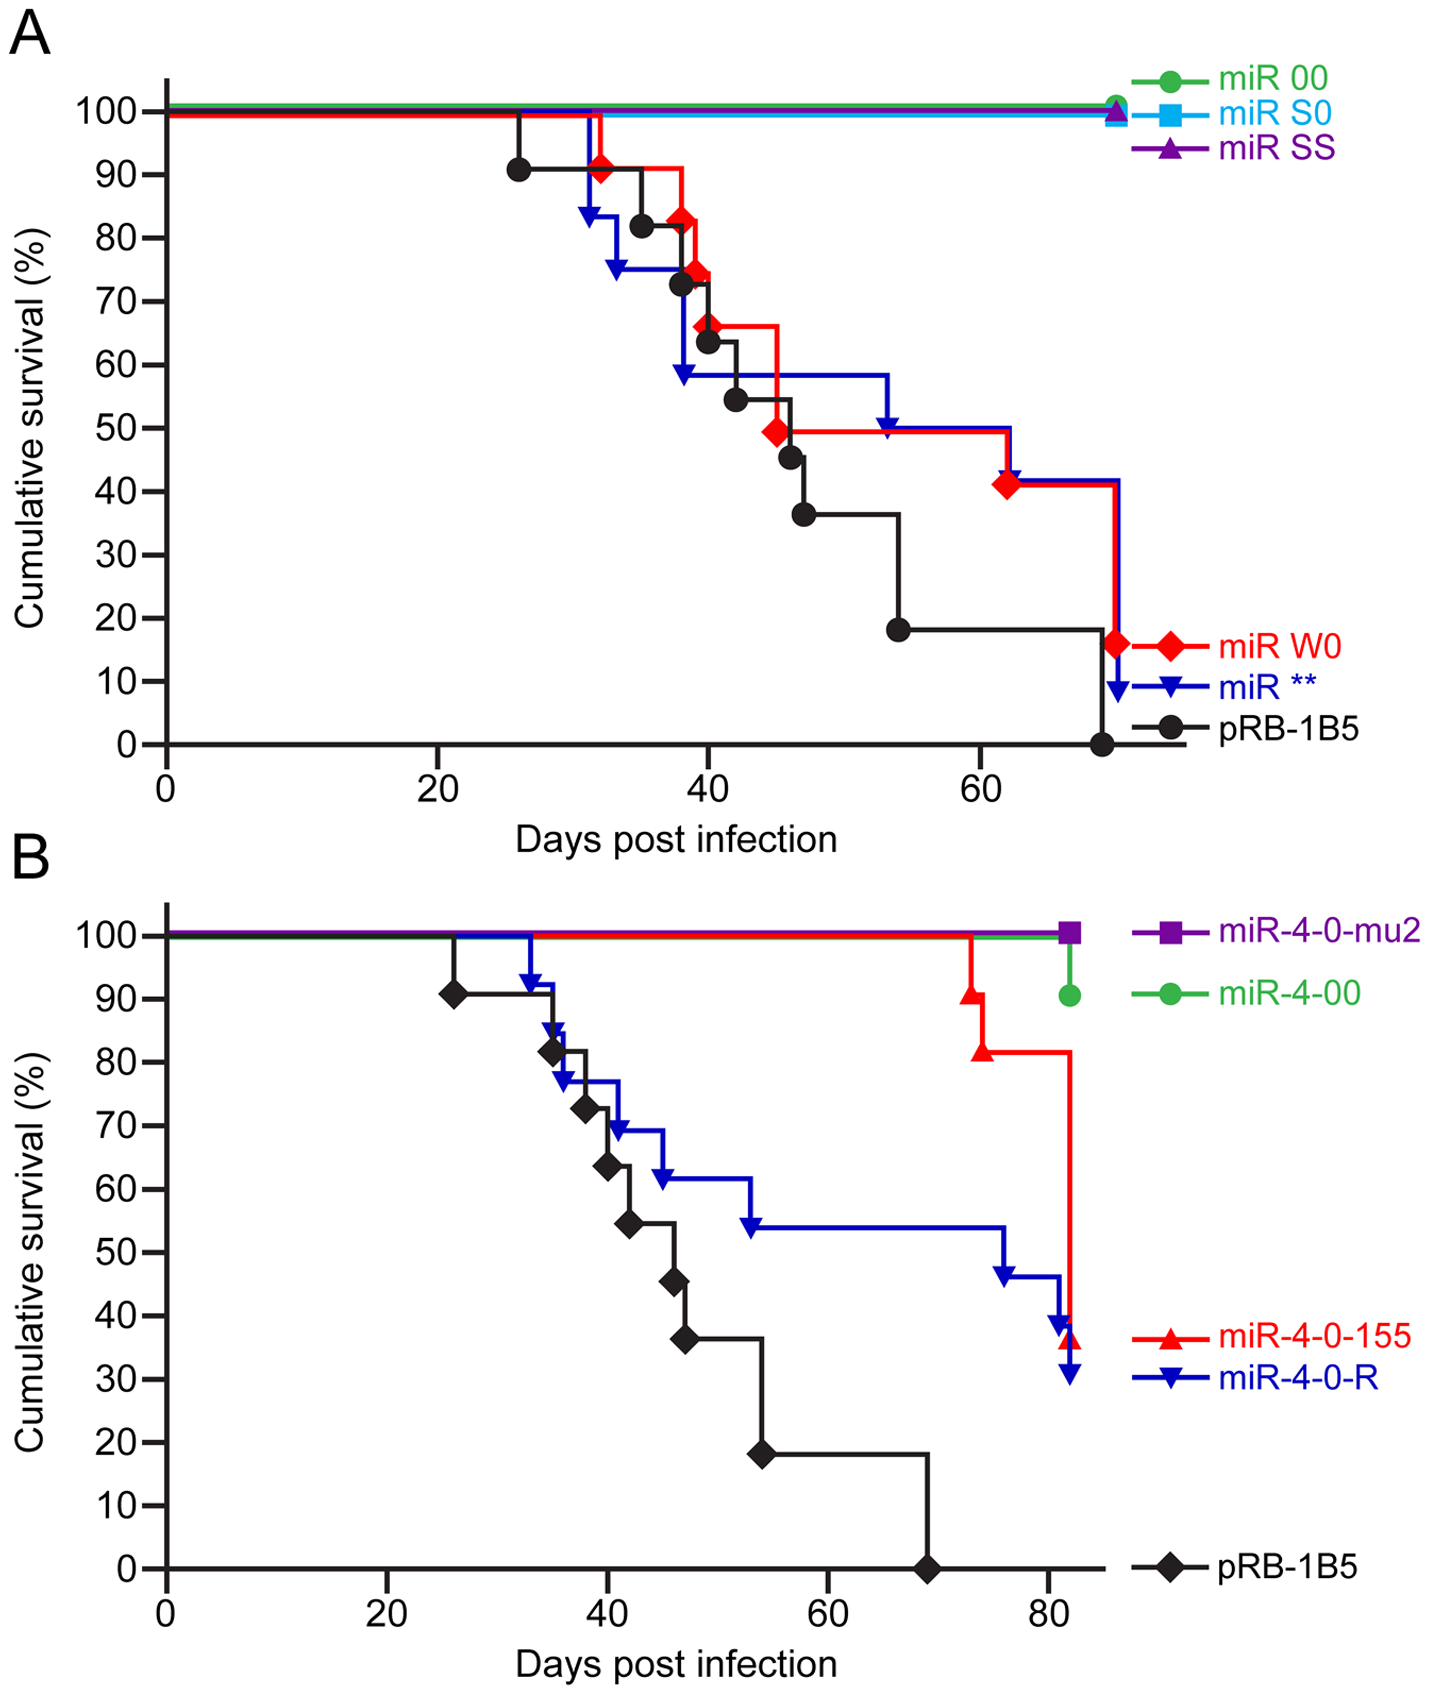 Incidence of MD in birds infected with recombinant viruses.